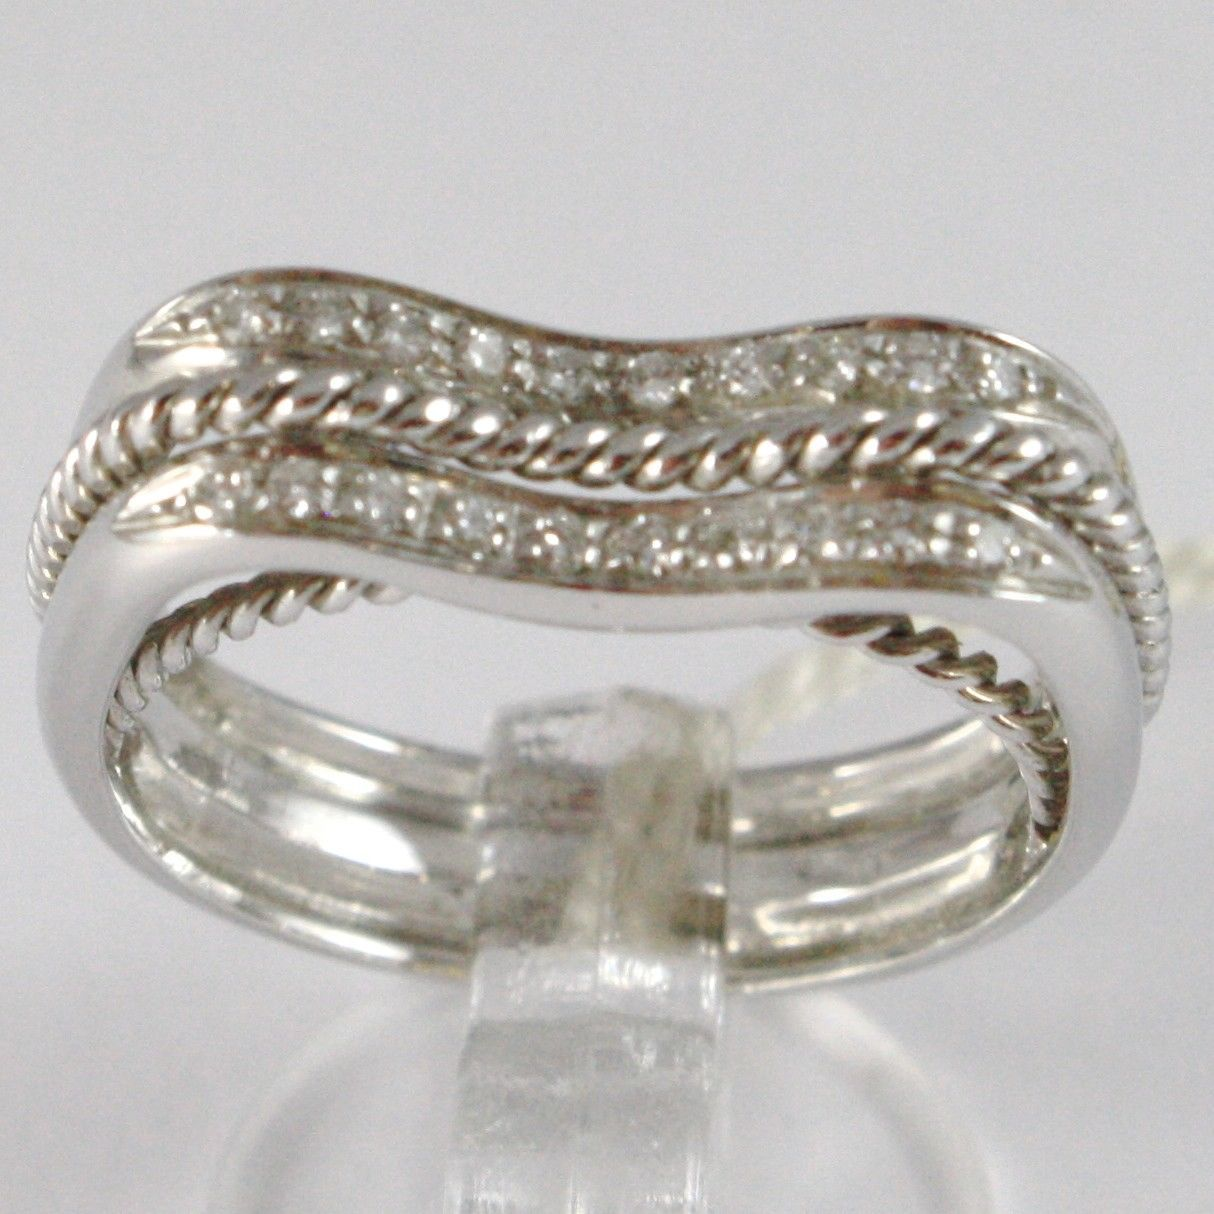 WHITE GOLD RING 750 18K, VERETTA UNDULATED, DOUBLE ROW OF DIAMONDS, THREADED